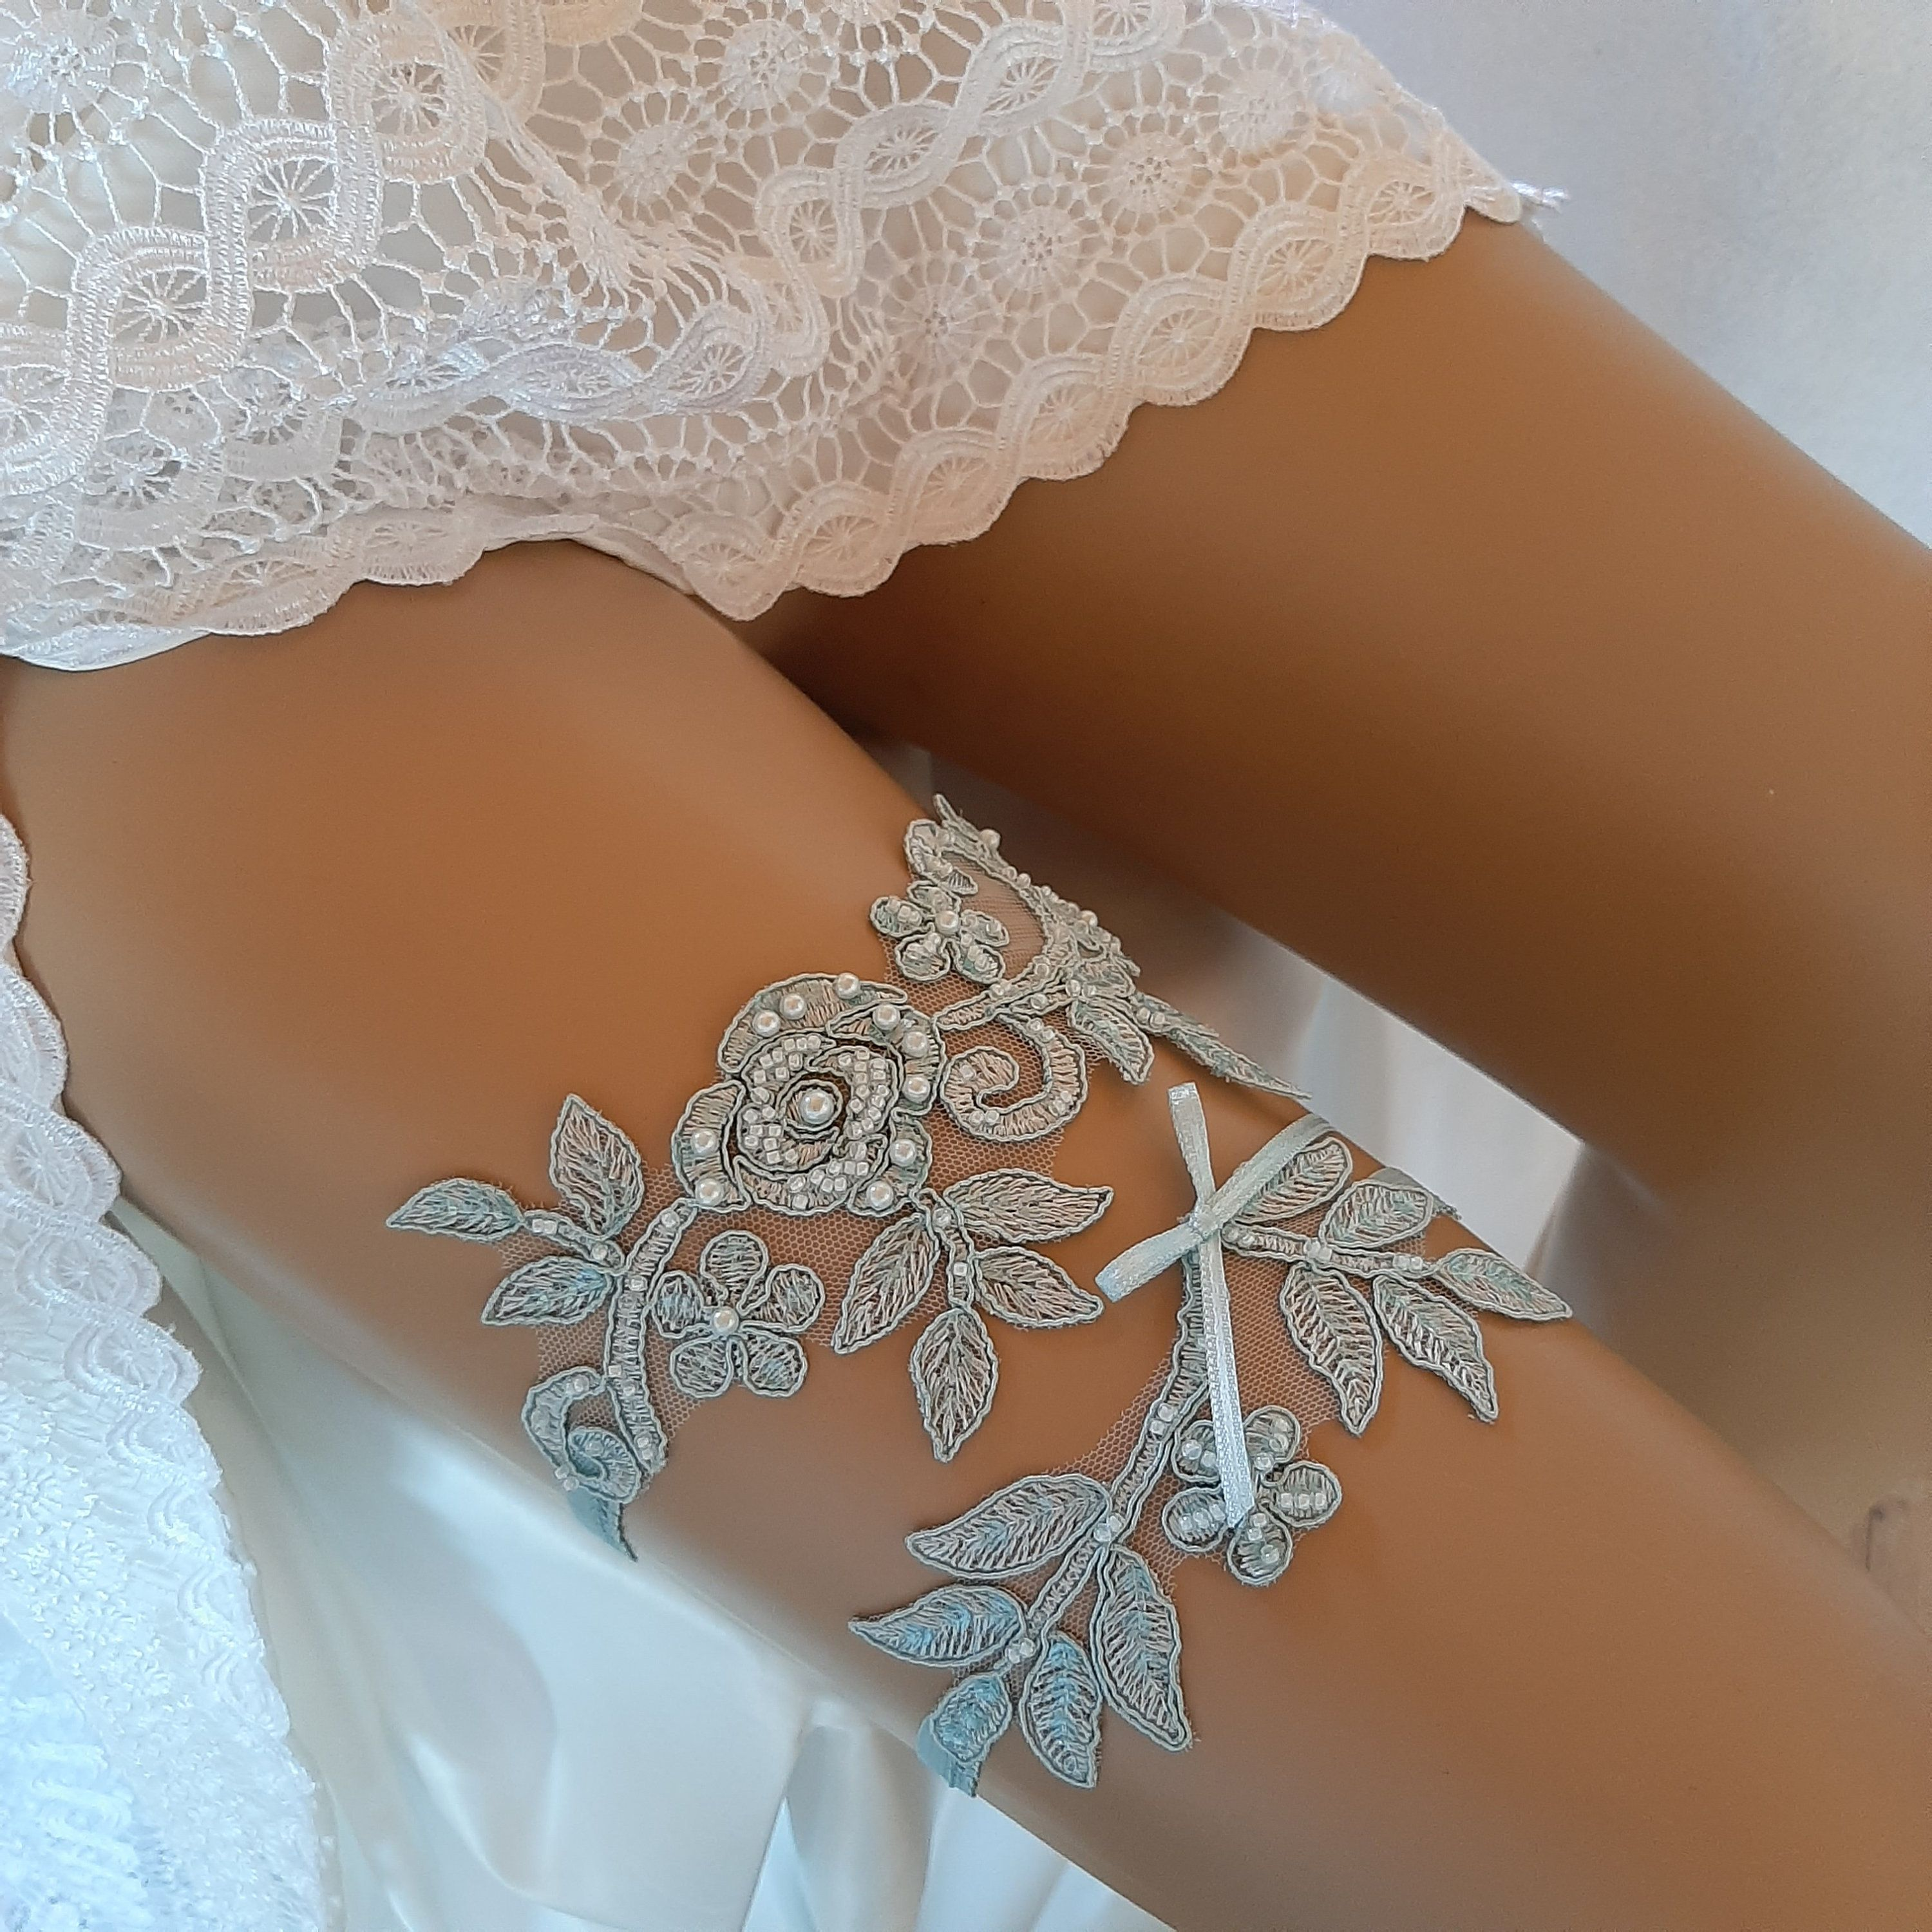 Wedding Bridal Lace Legs Garter Set Bridal Garters Lace Belt with Beads Toss Away Prom Garters